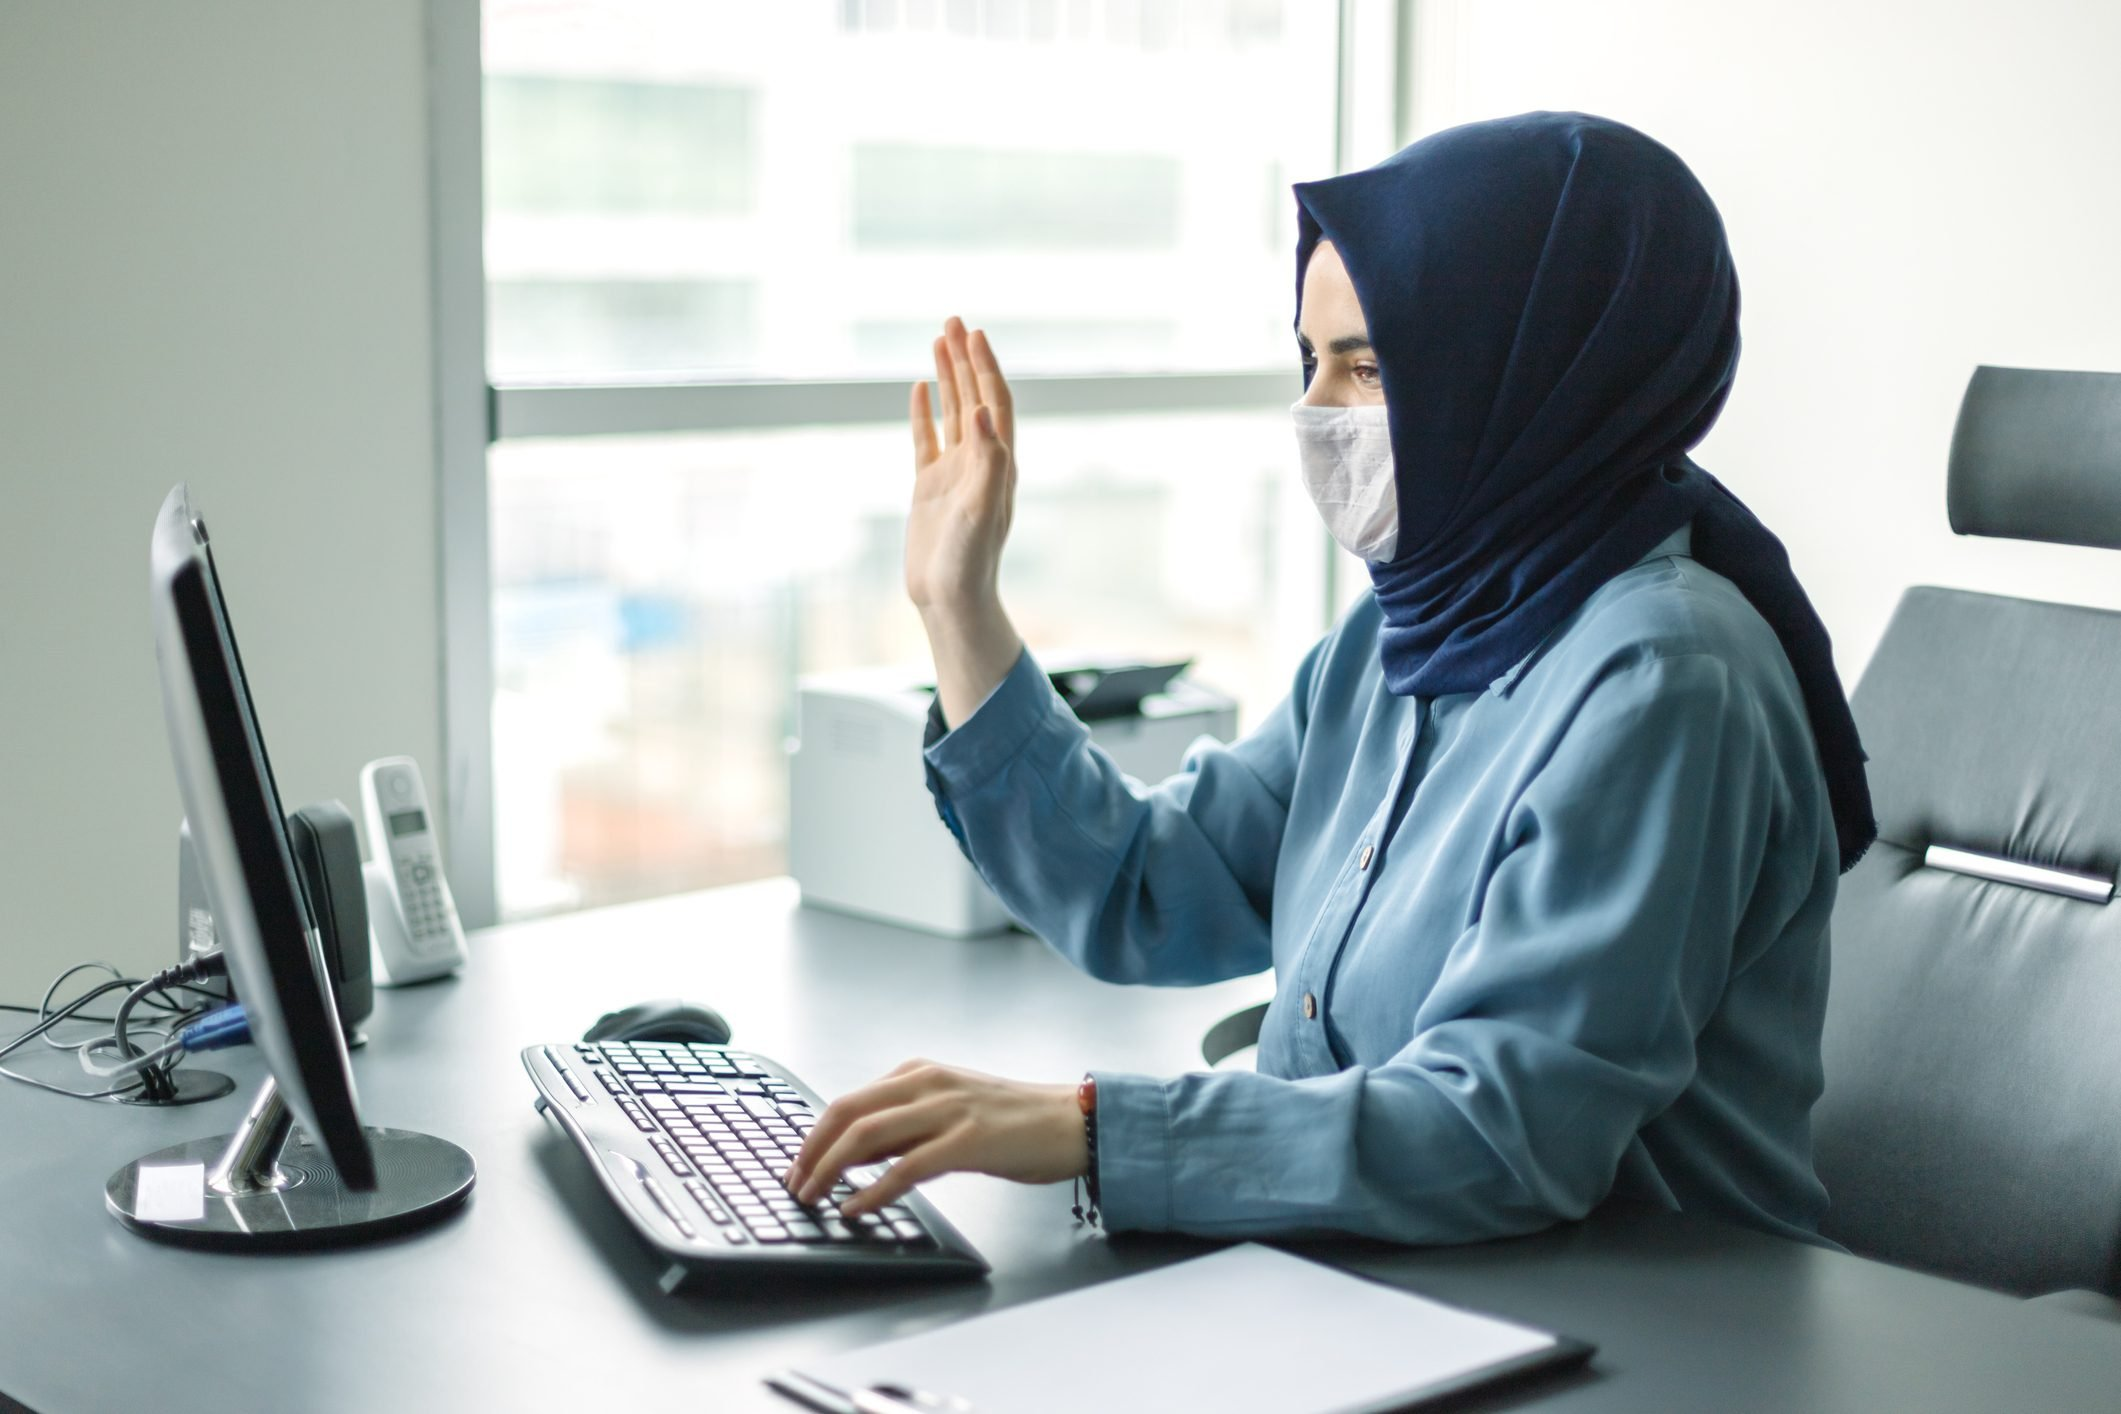 Muslim girl in hijab making global connections